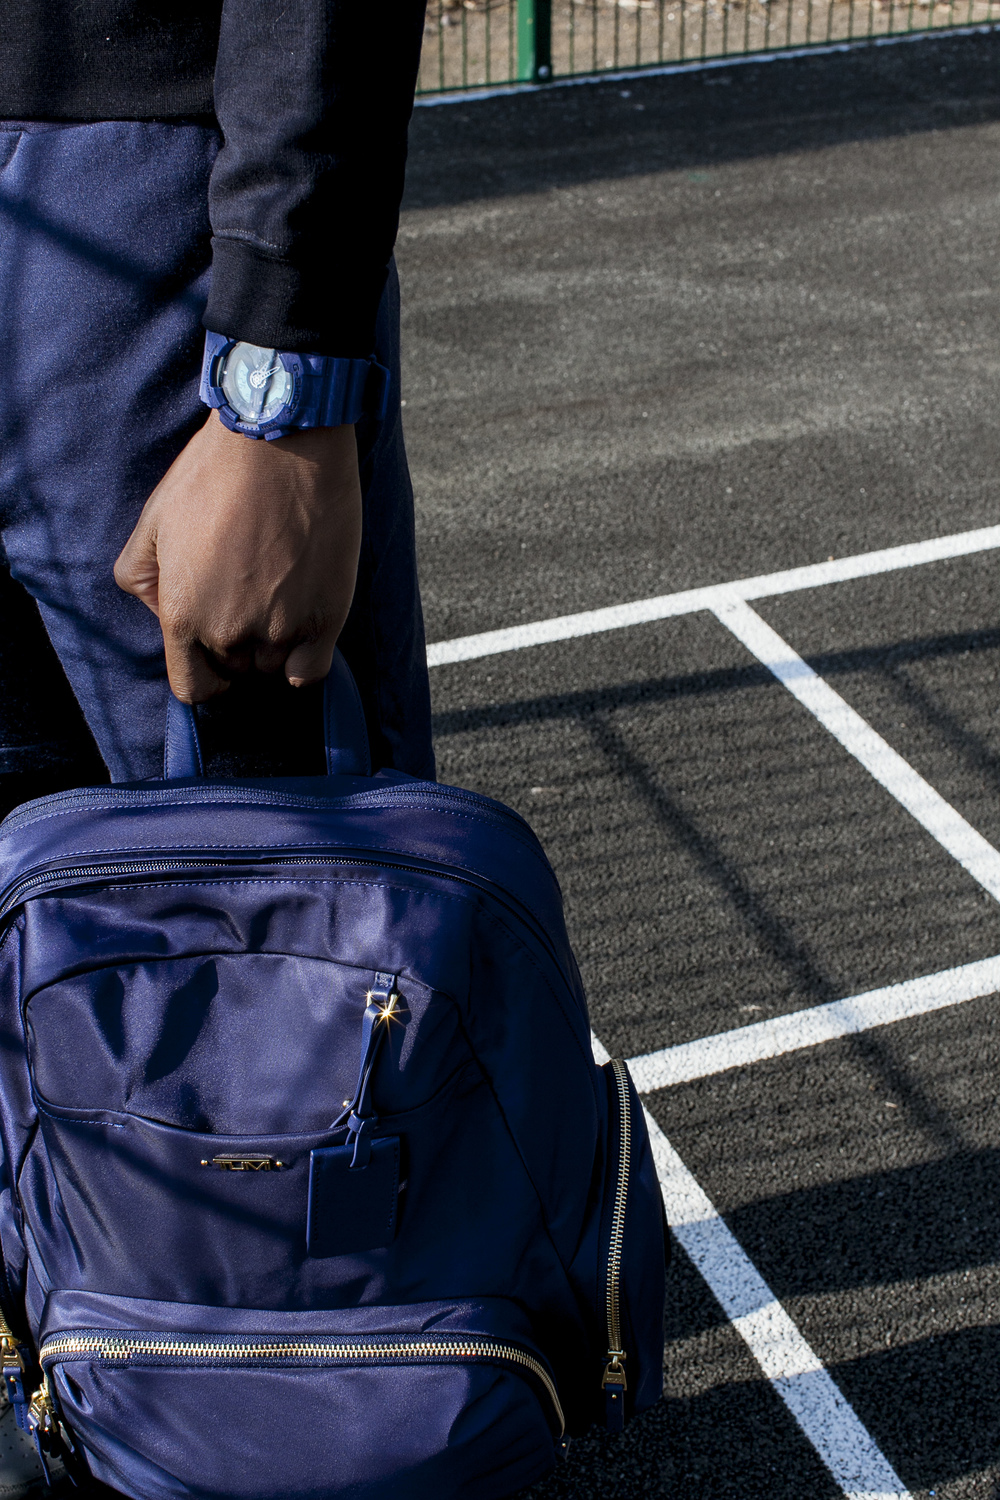 Before During After SAMSON Vol. 2 G-Shock watch Tumi Backpack.jpg